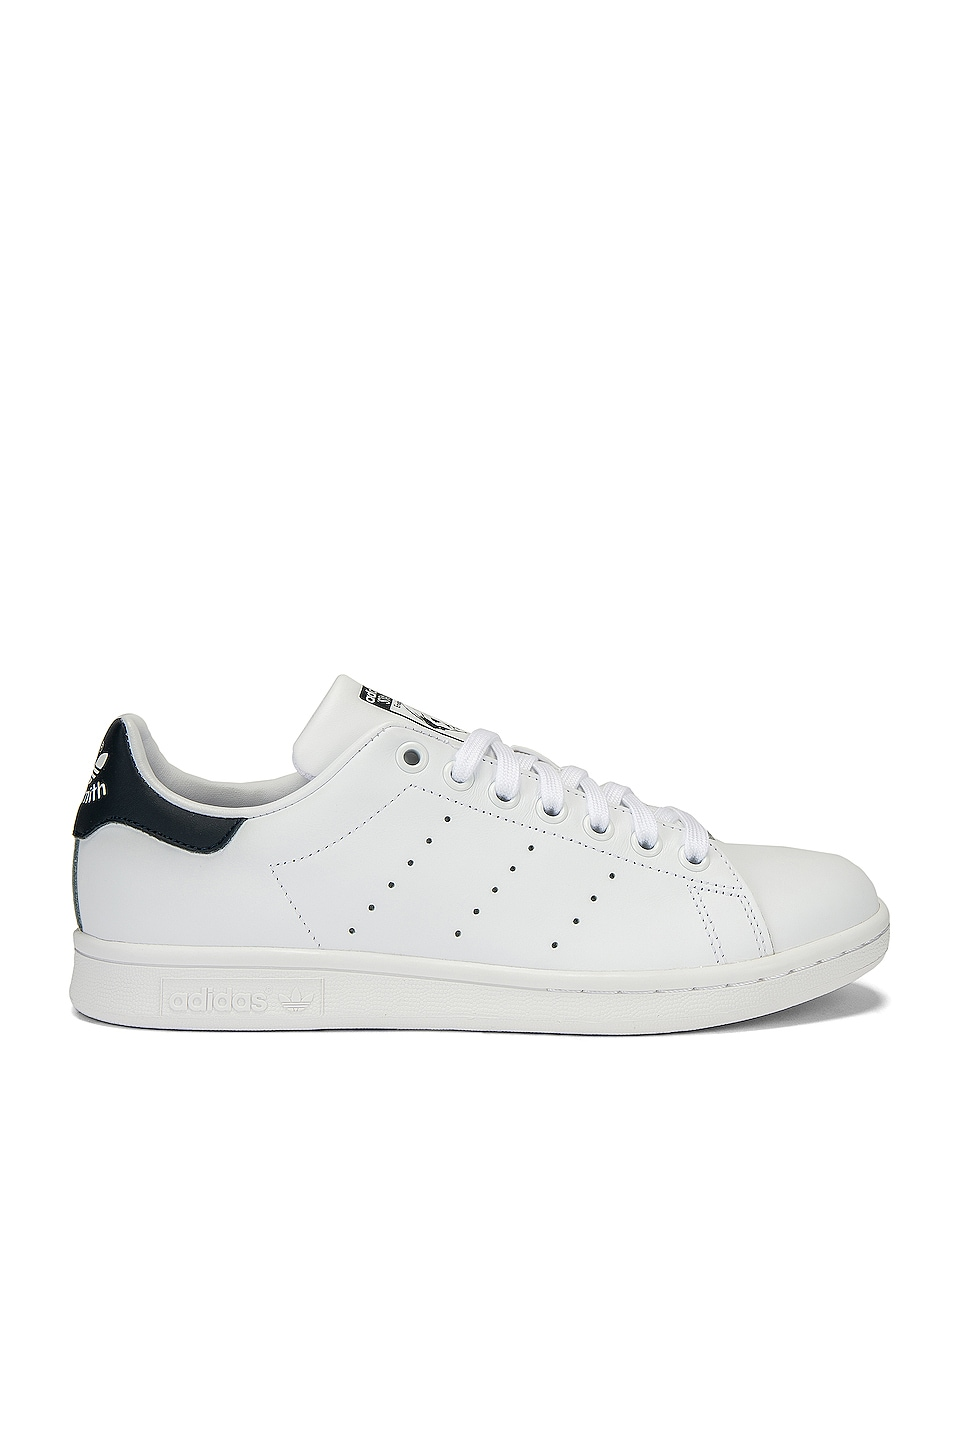 adidas Originals Stan Smith in White & Dark Blue